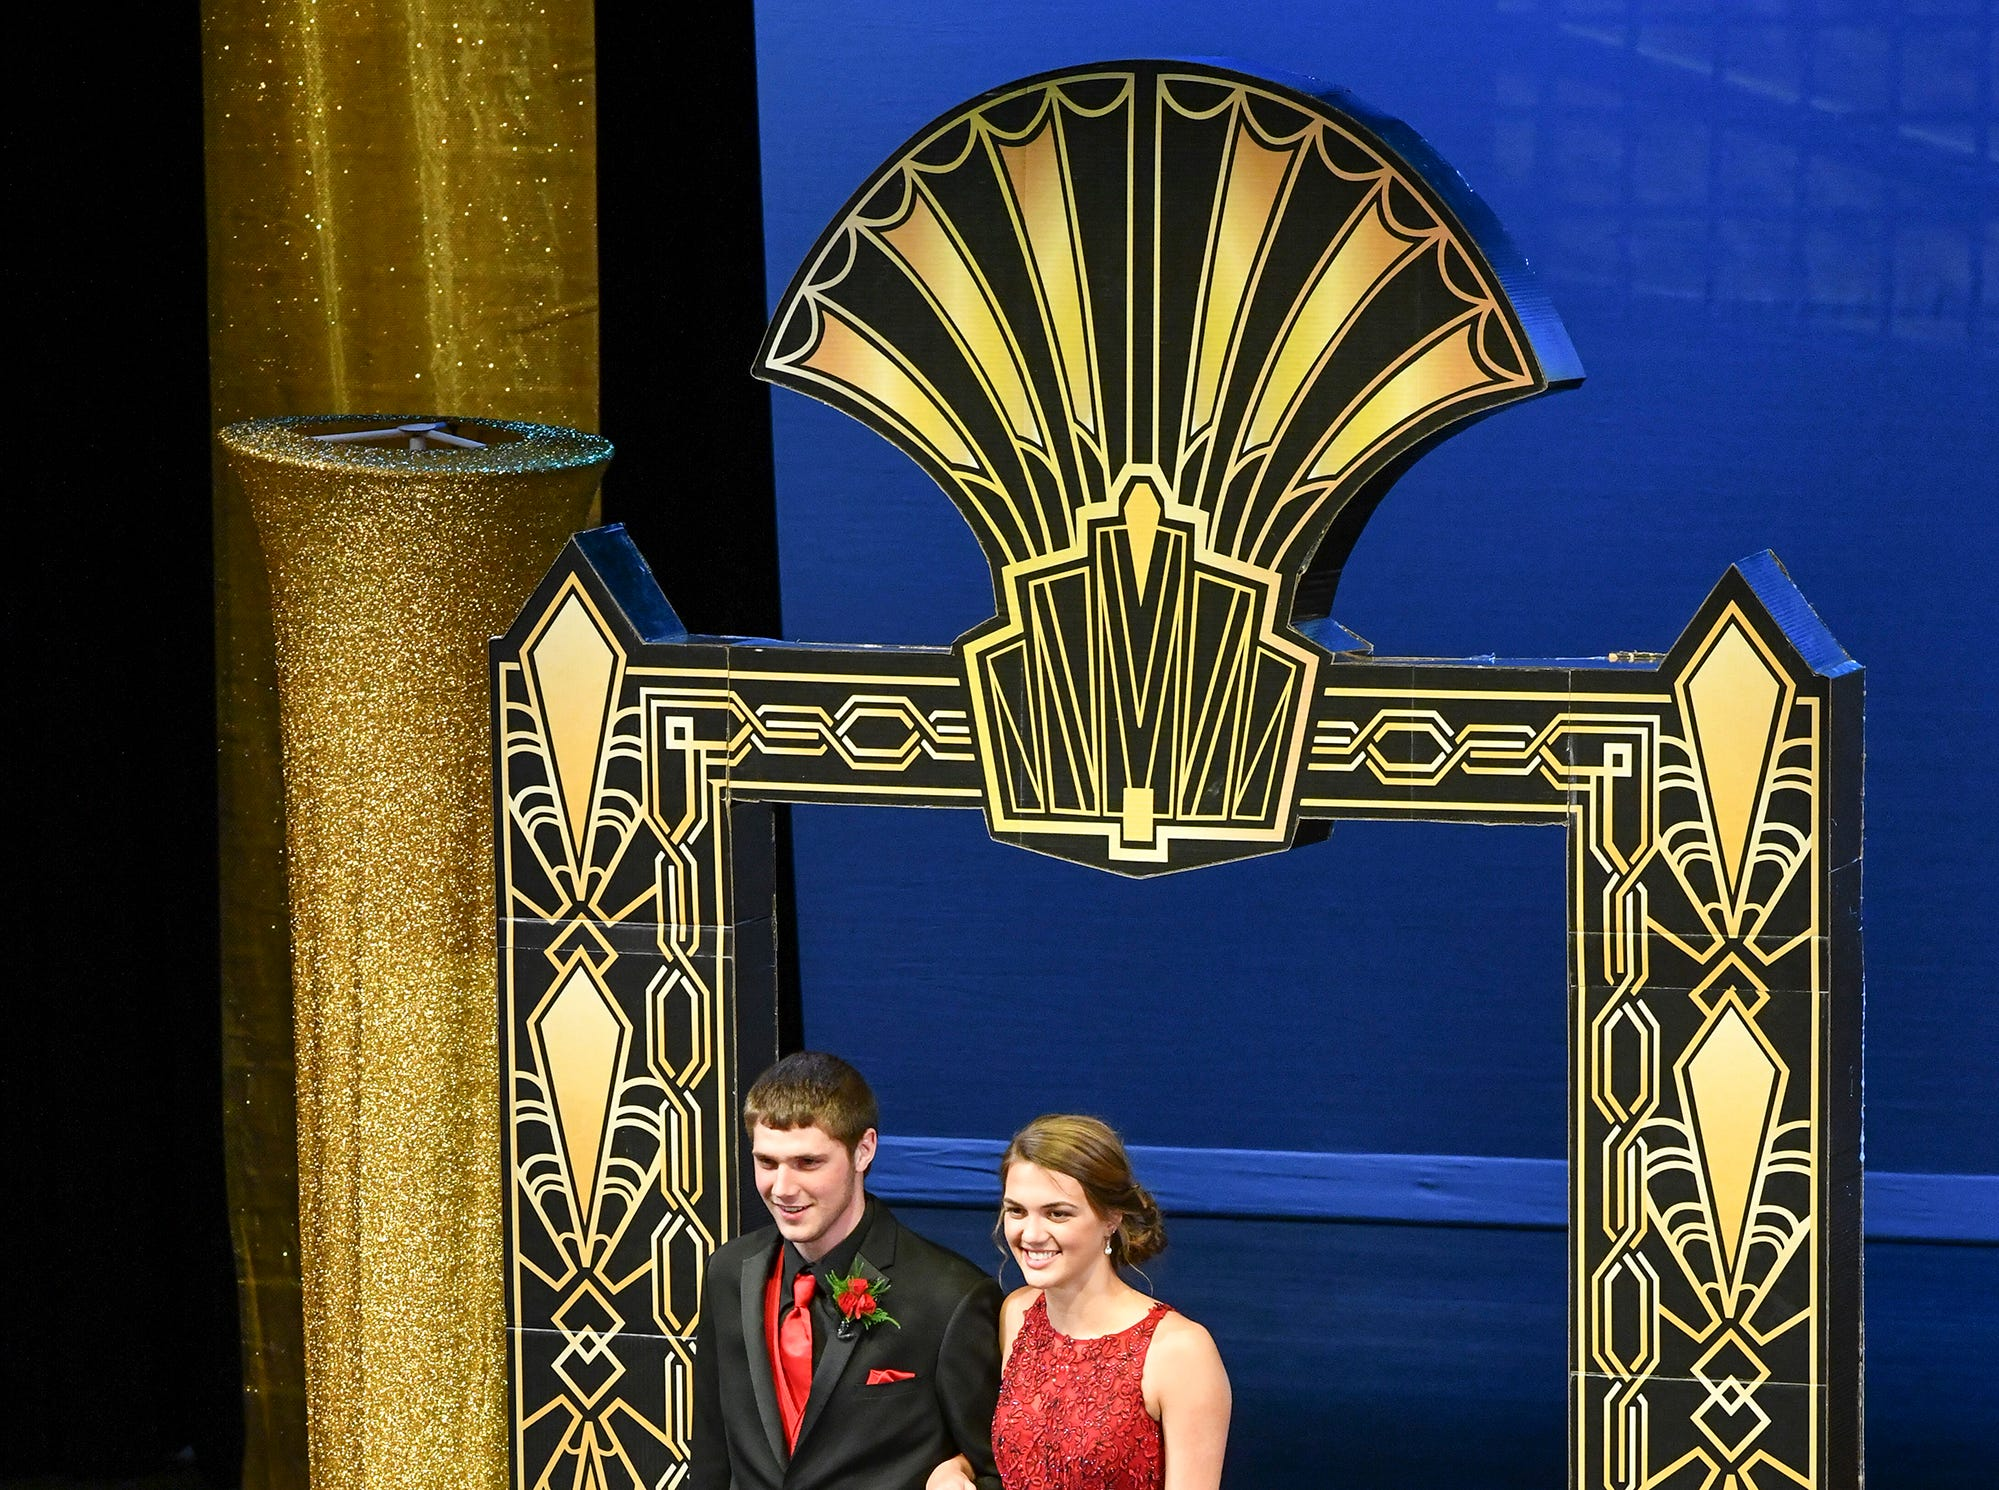 Crystal Koglin and Logan Arceneau smile during prom grand march Saturday, April 6, at Albany High School.